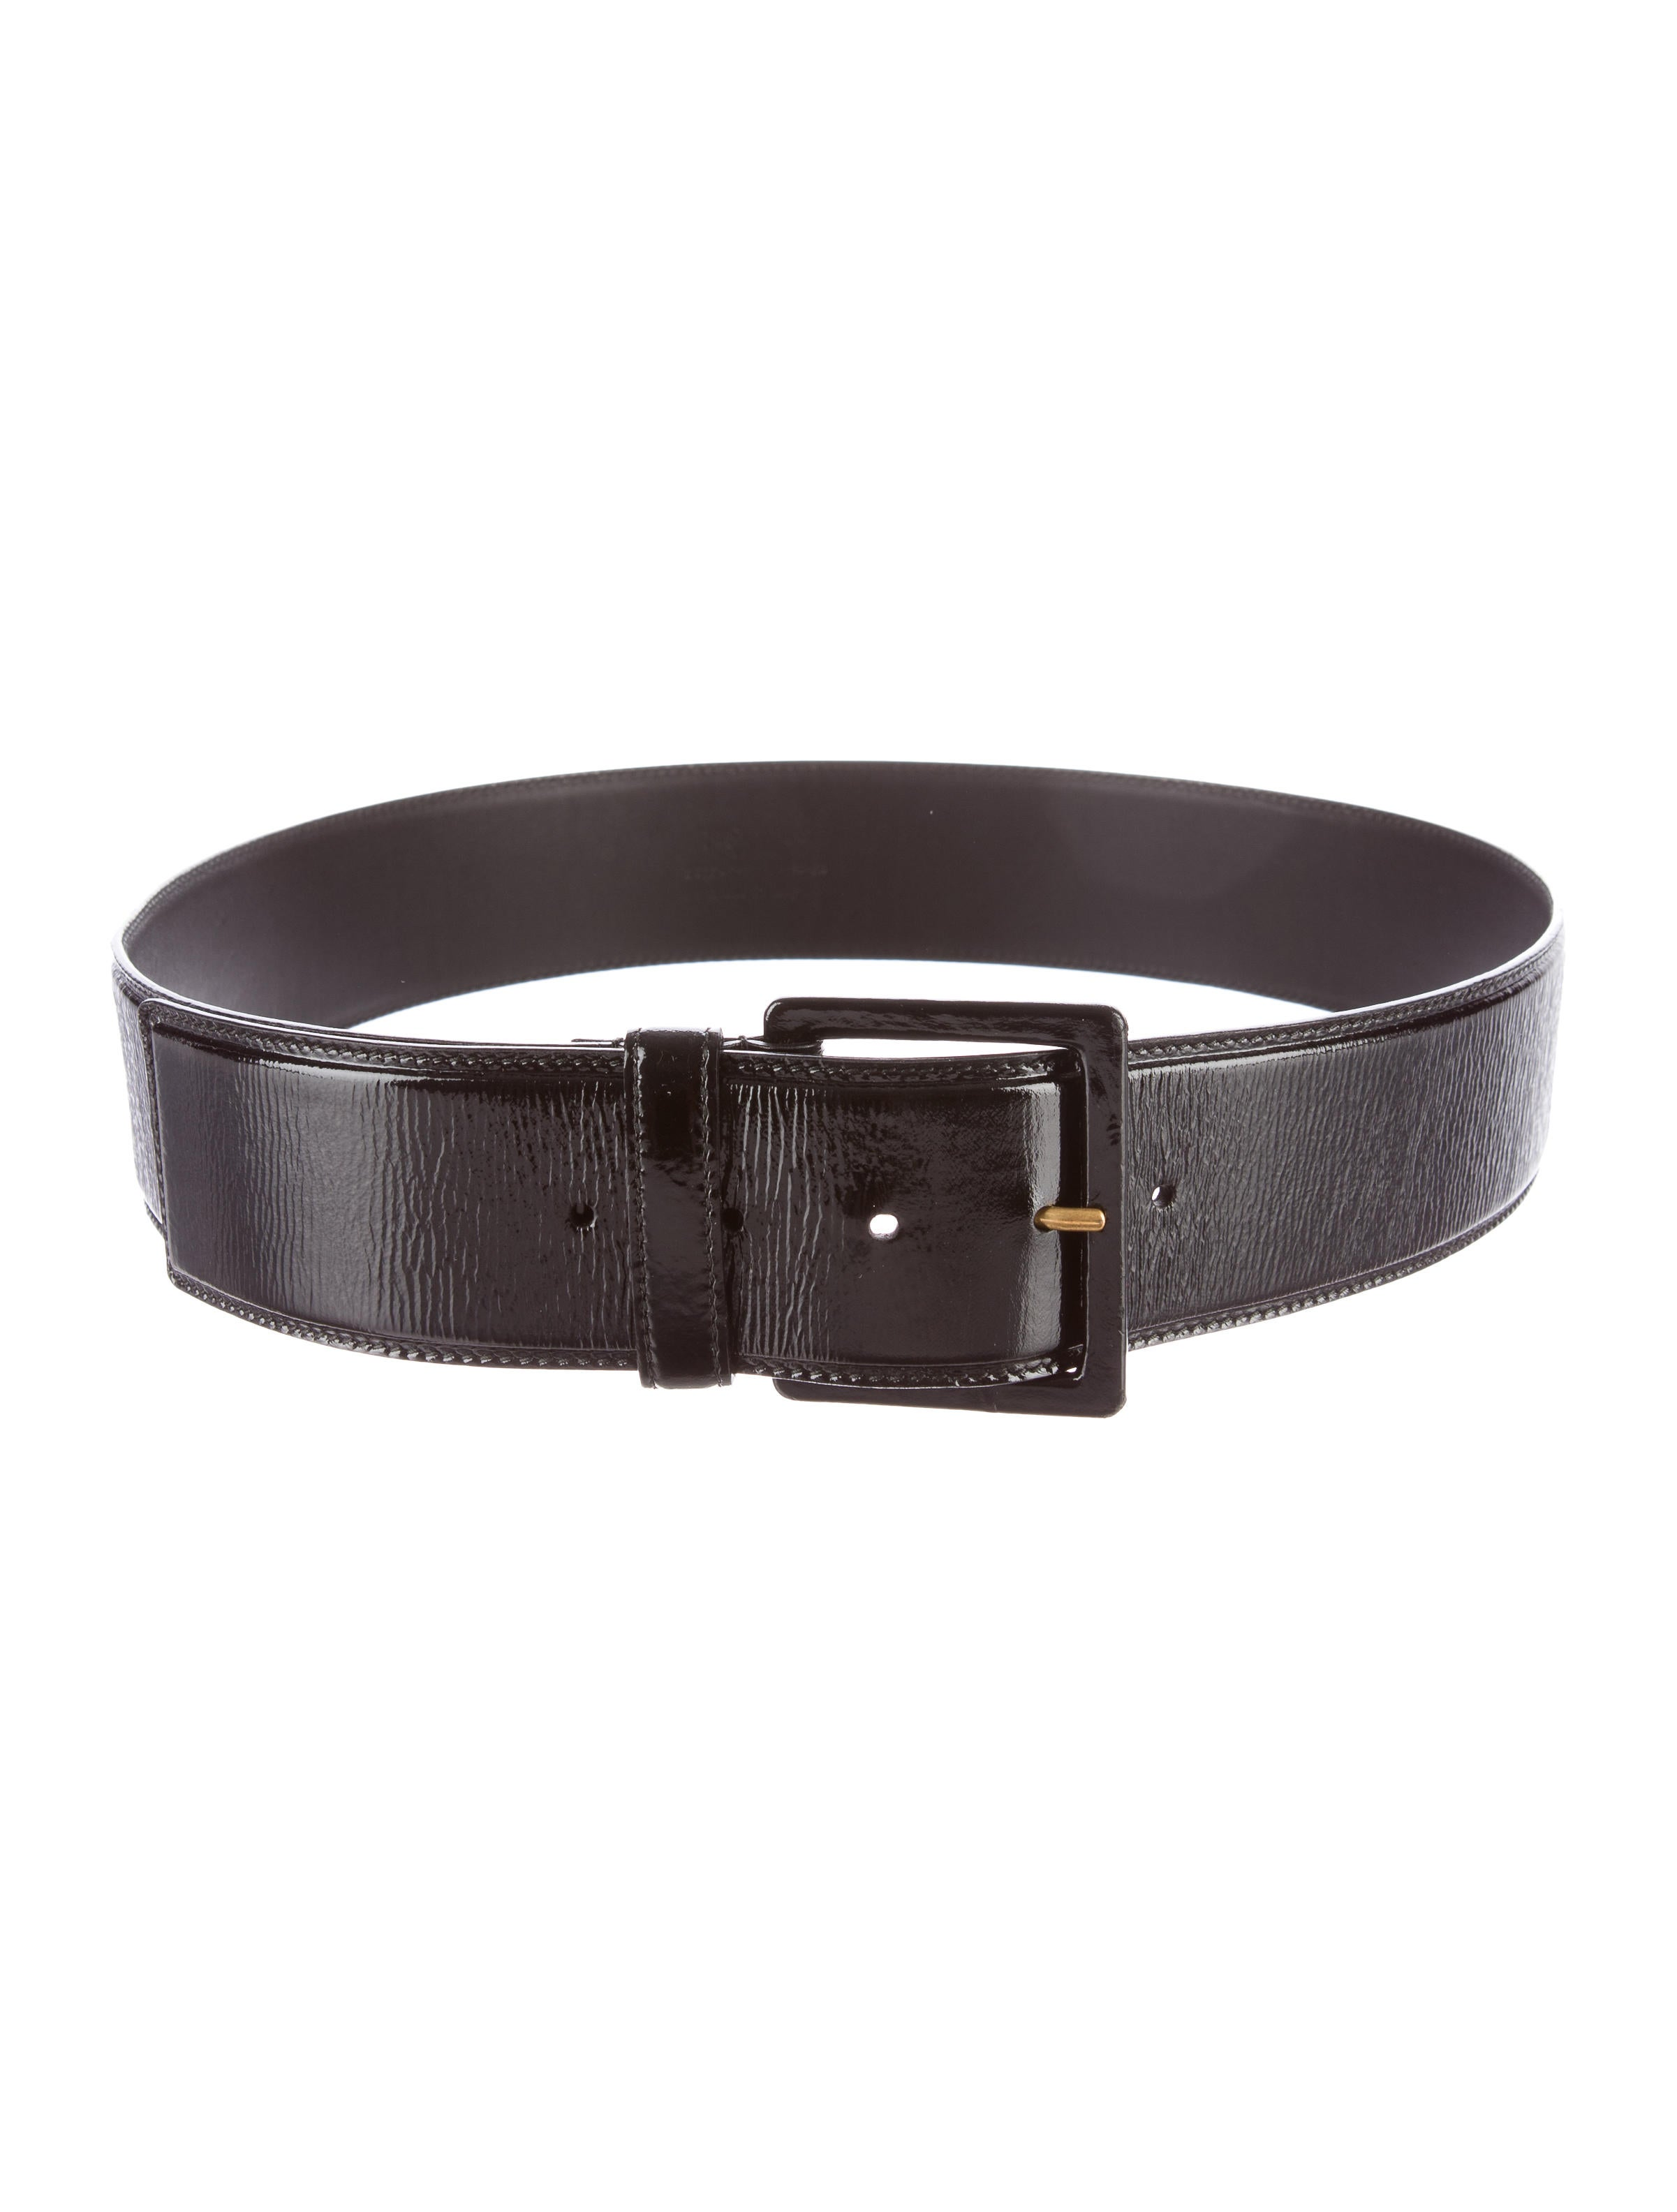 f3d87e526783 Yves Saint Laurent Belts Women